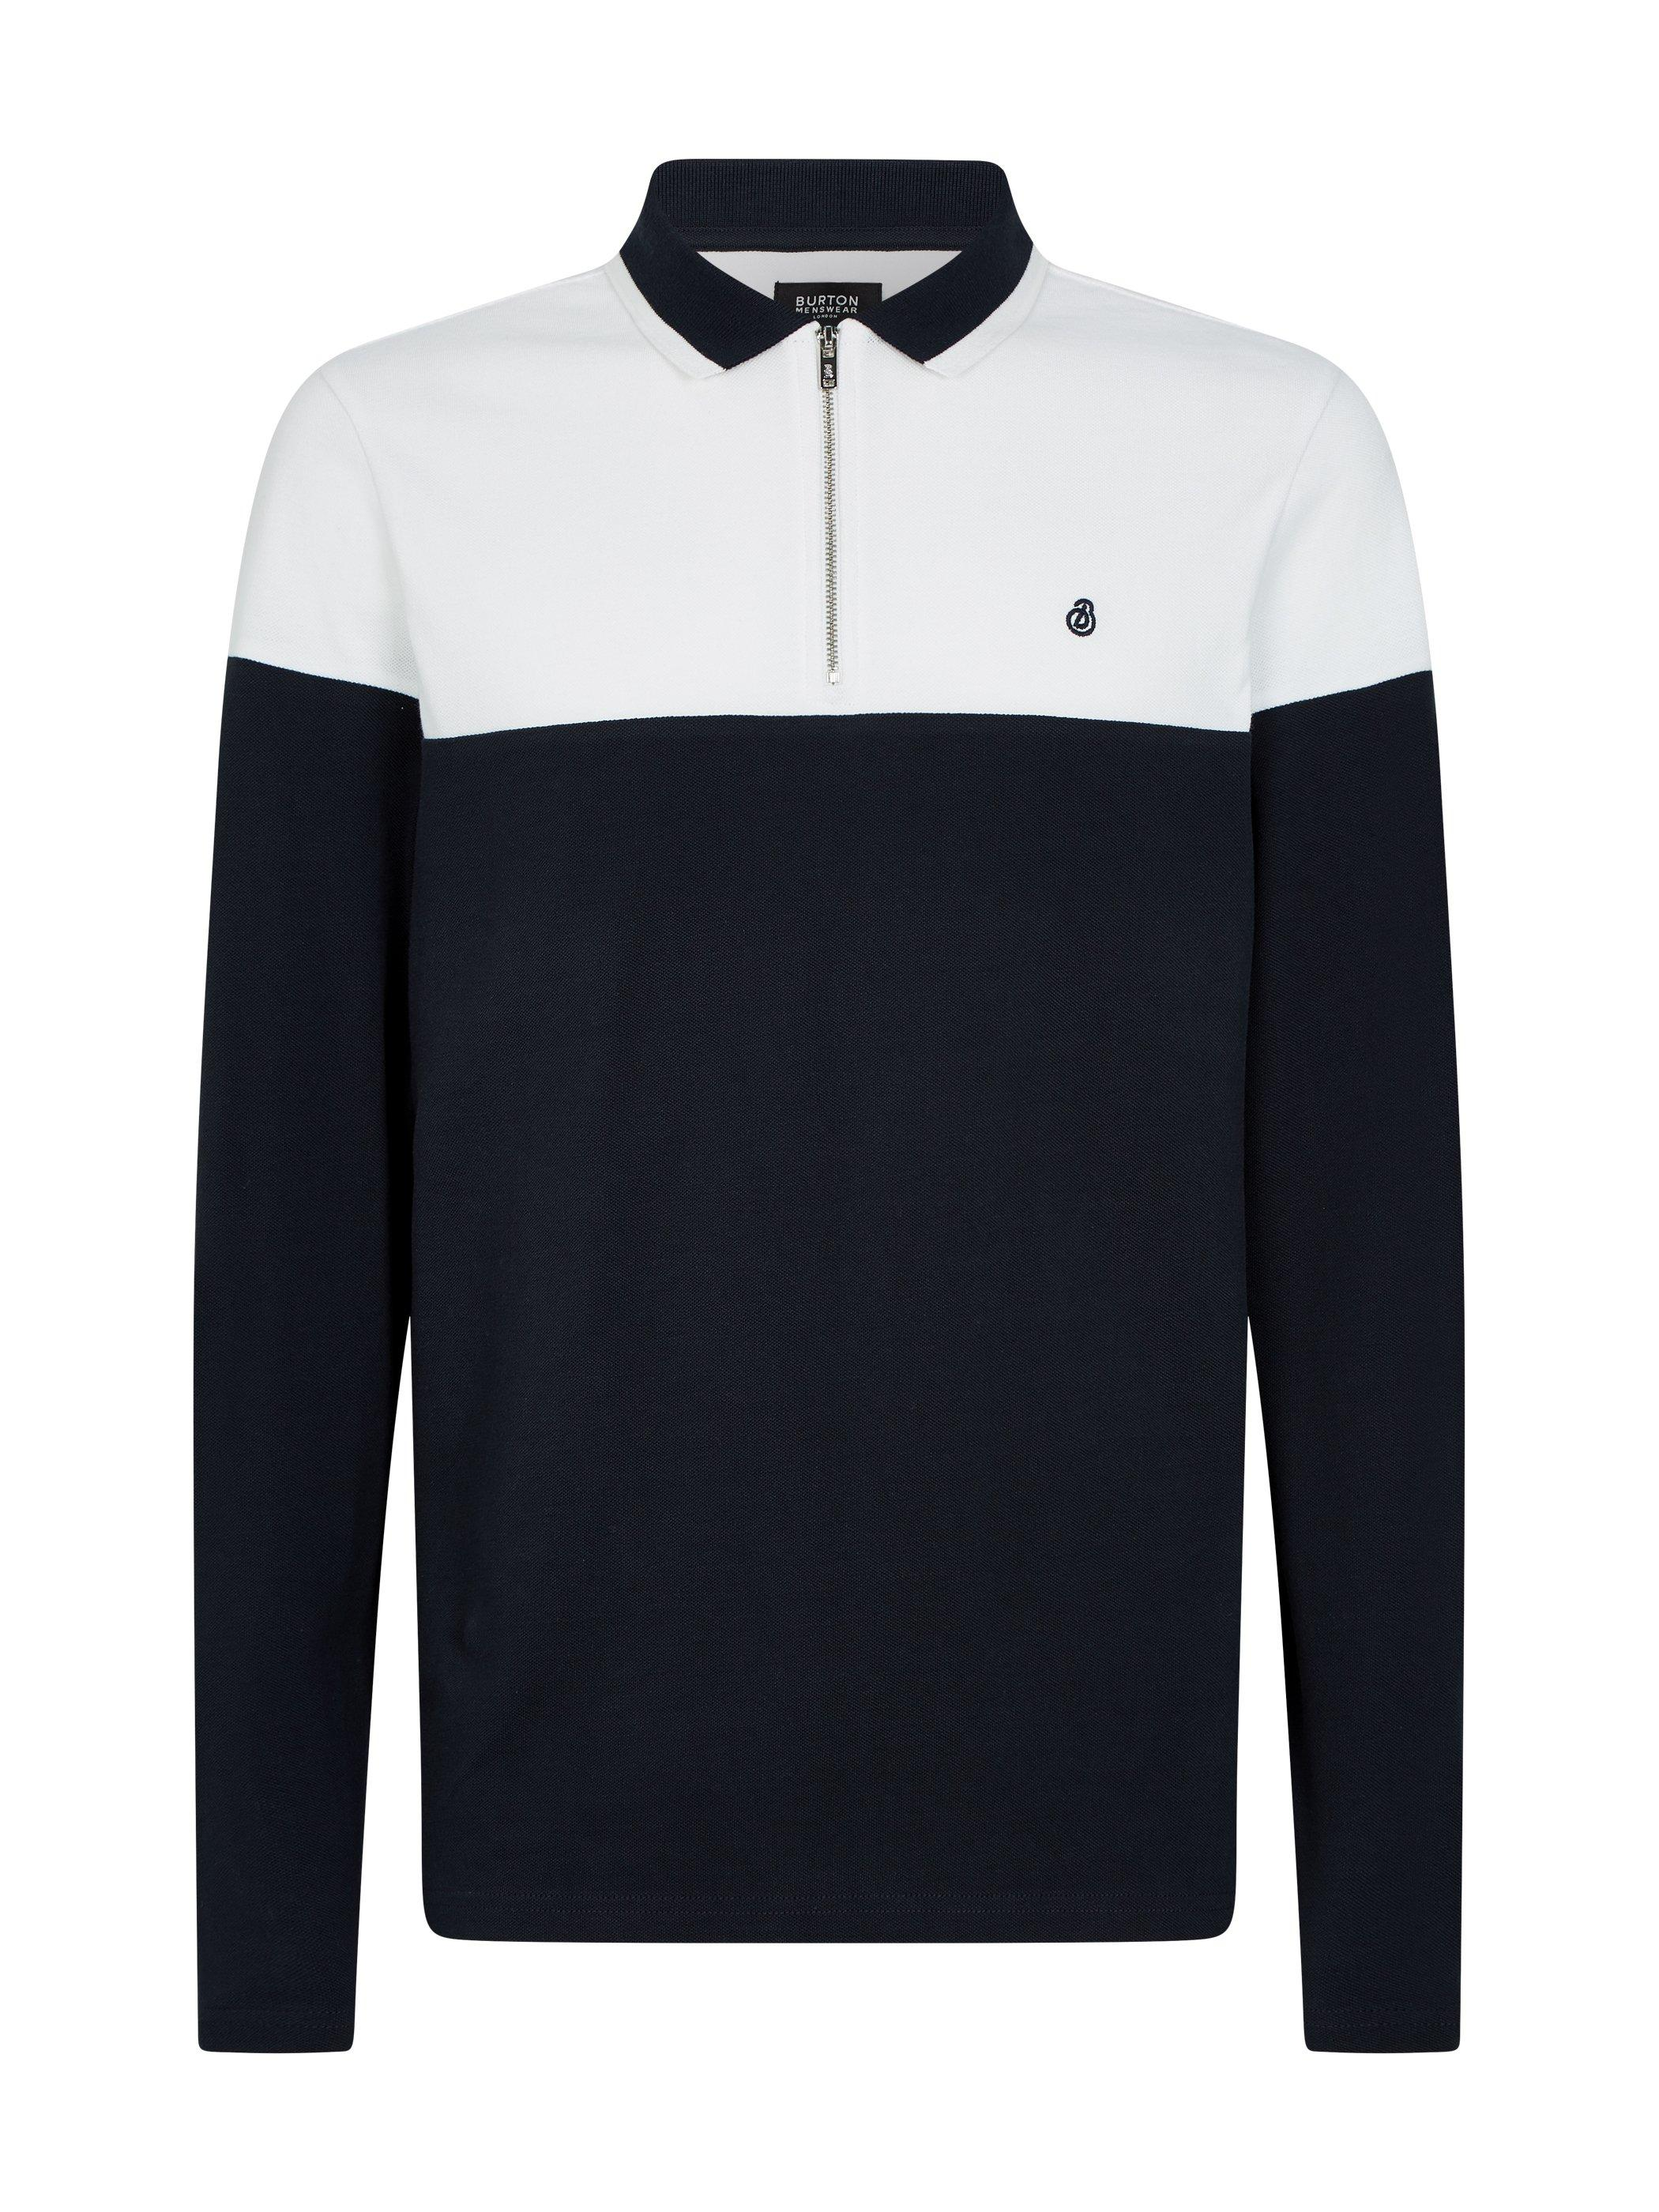 Men'S Navy Cut And Sew Embroidered Zip Polo Shirt - M